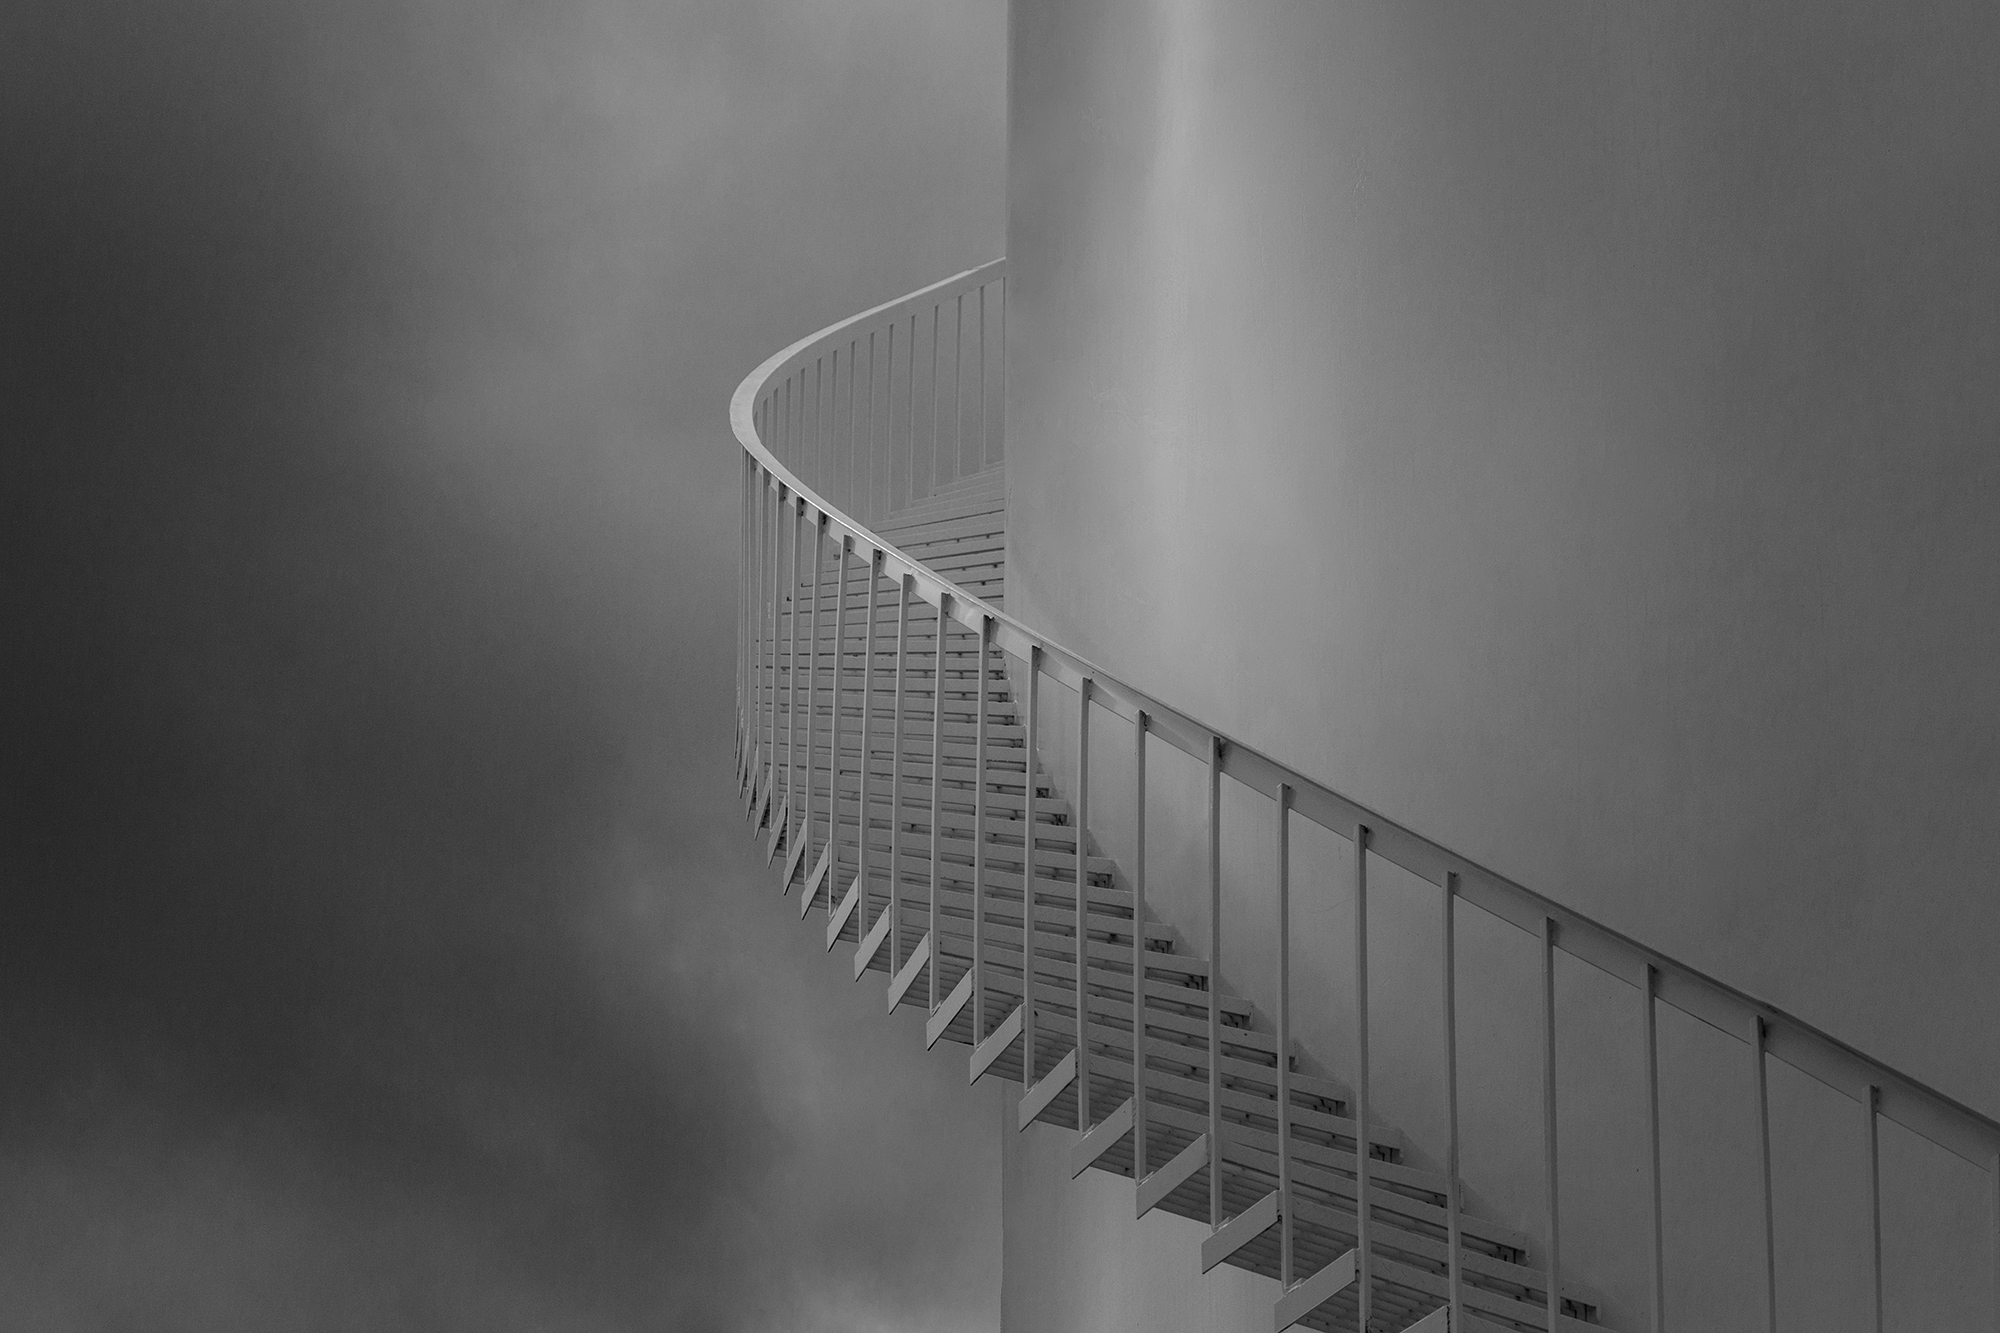 A staircase on a chemical holding tank photographed by Houston corporate photographer, Todd Spoth.